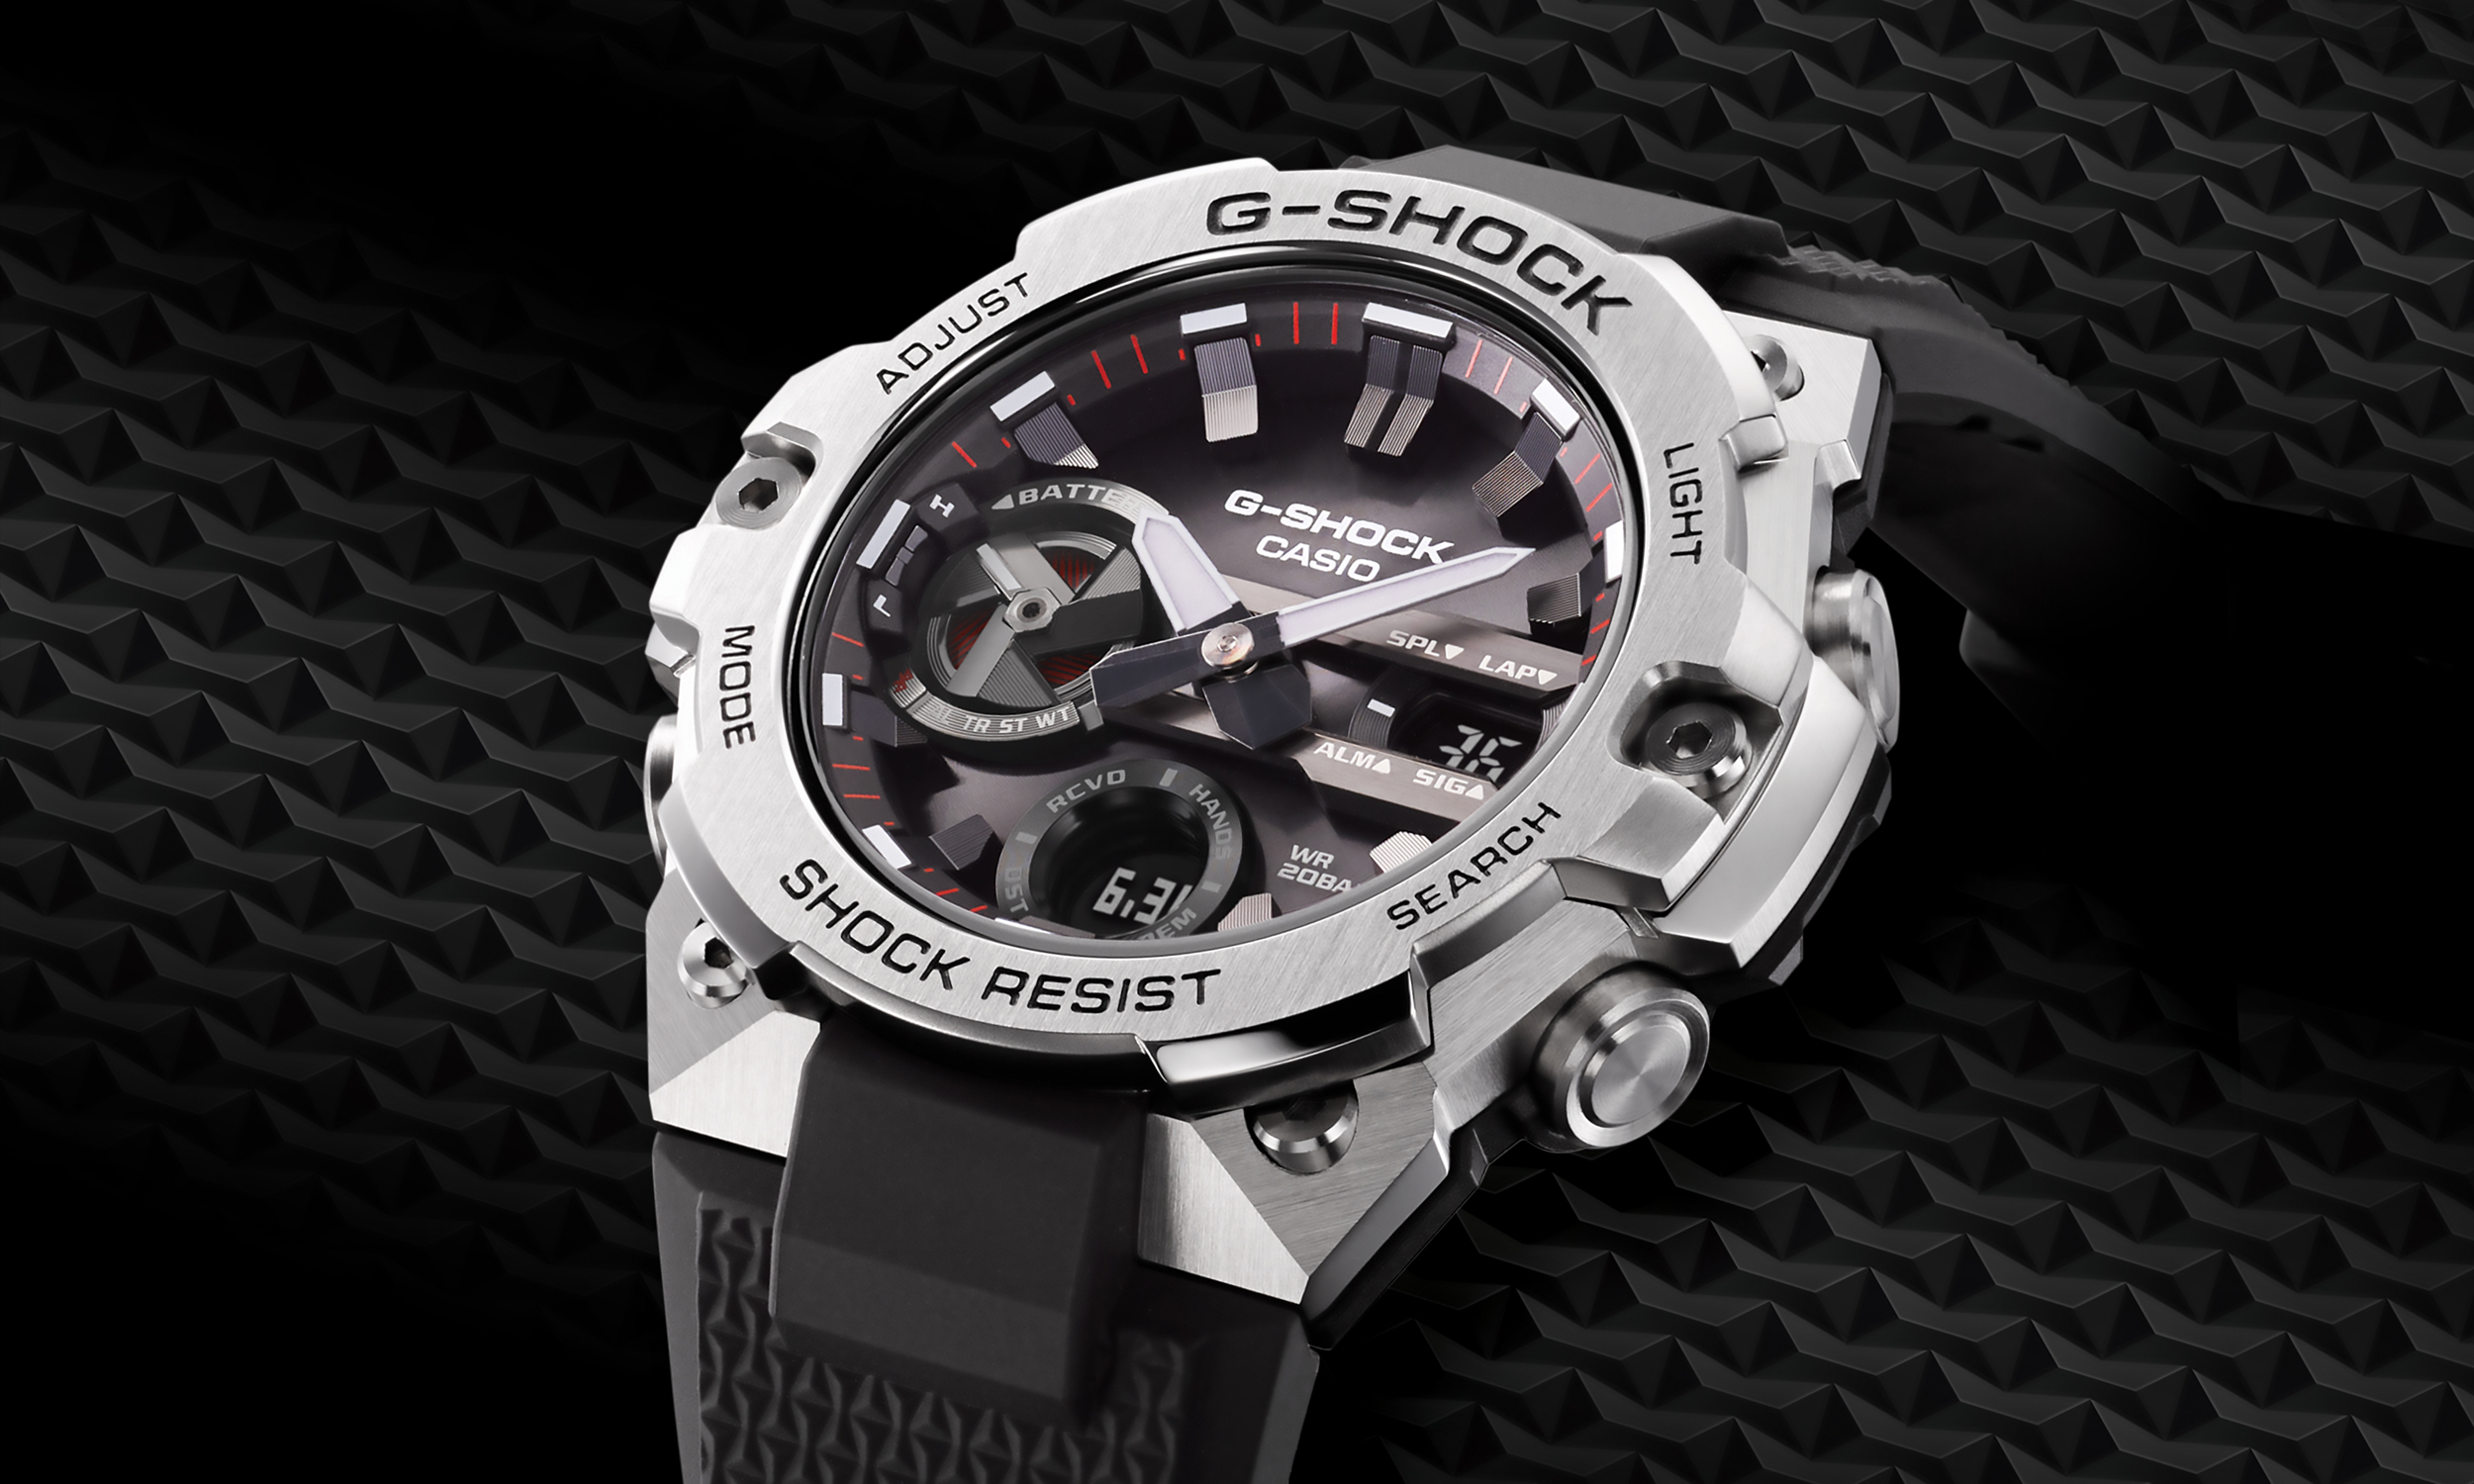 G-Shock G-Steel GSTB400-1A